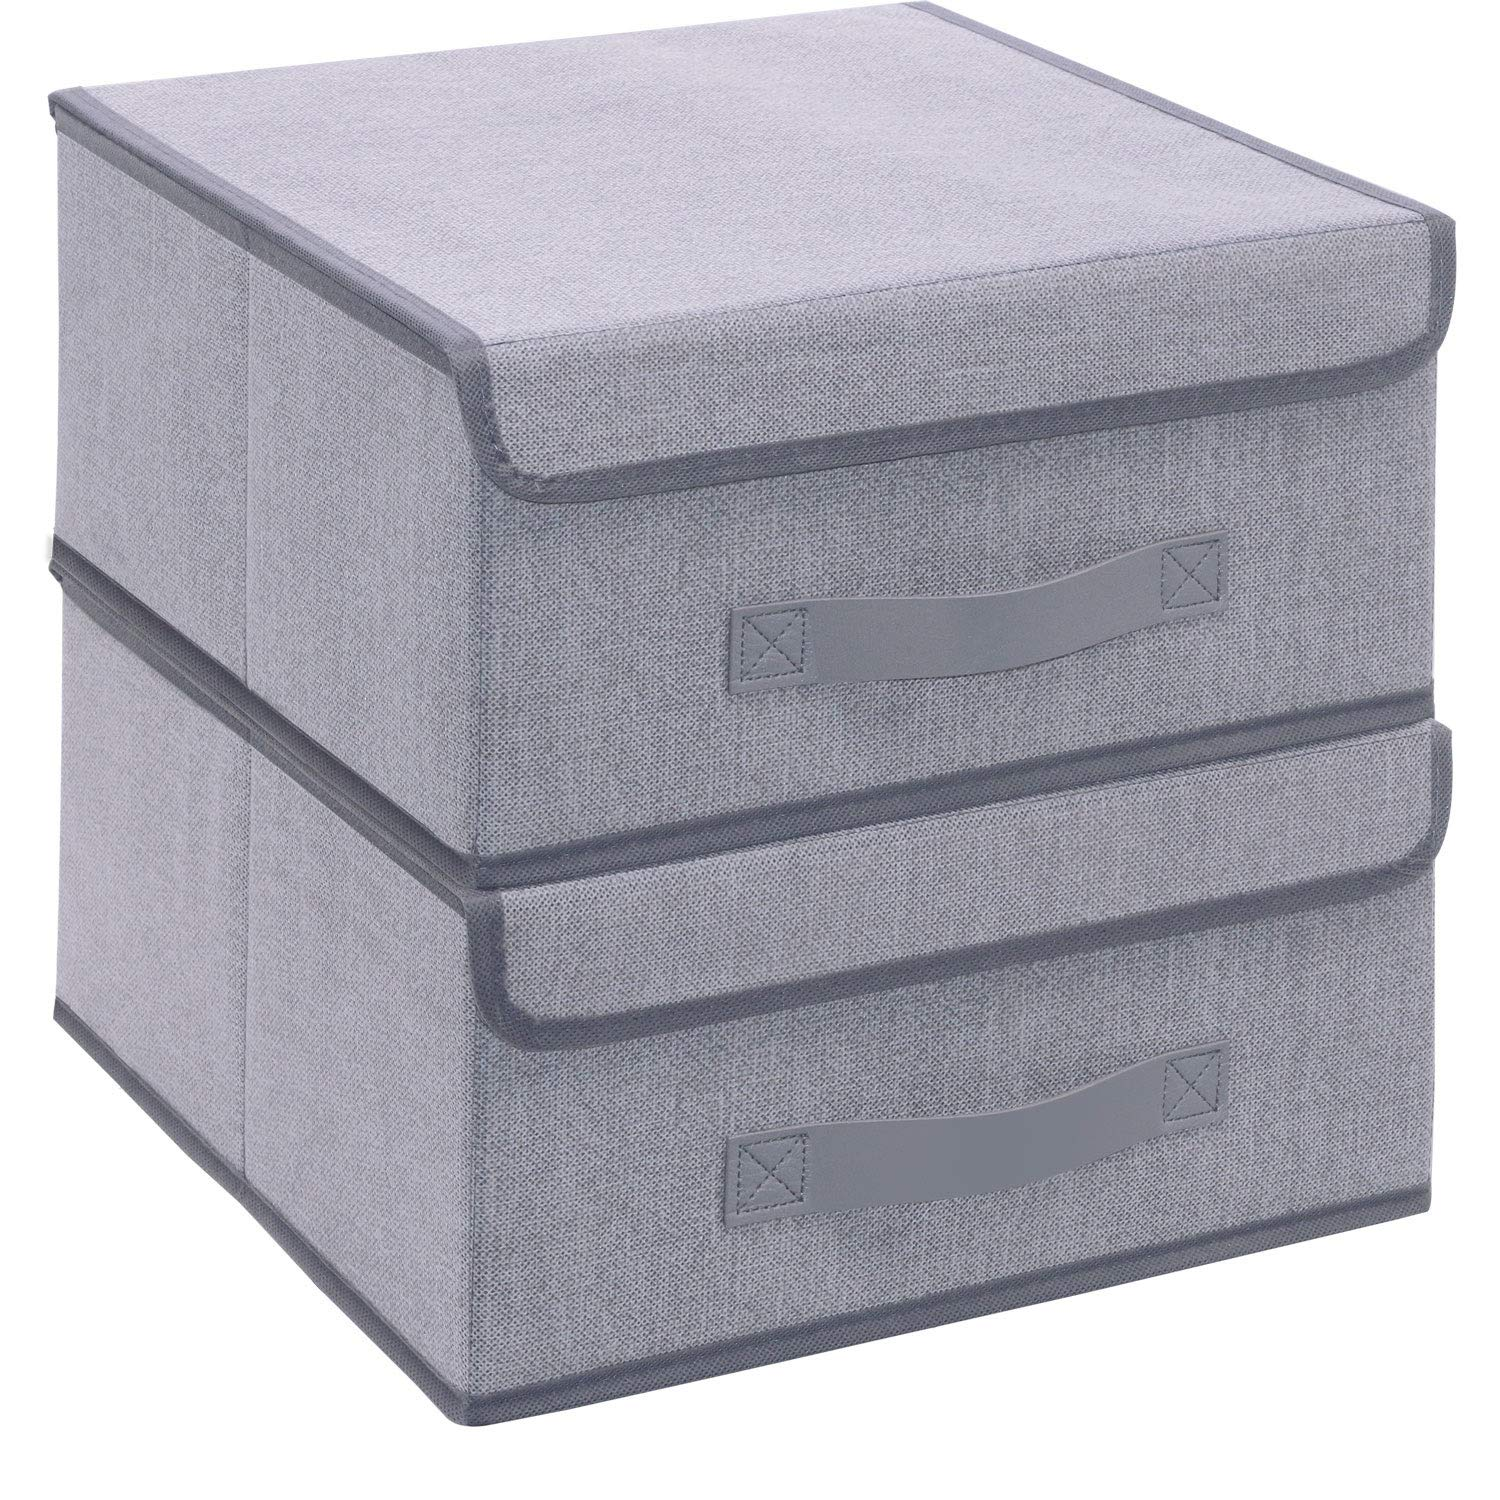 Onlyeasy Foldable Storage Bins Cubes Boxes with Lid - Storage Box Cube Cubby Basket Closet Organizer Pack of 2 with Leather Handles for Closet Bedroom, 13'' x 13'', Linen-Like Grey, MXDLB2P by Onlyeasy